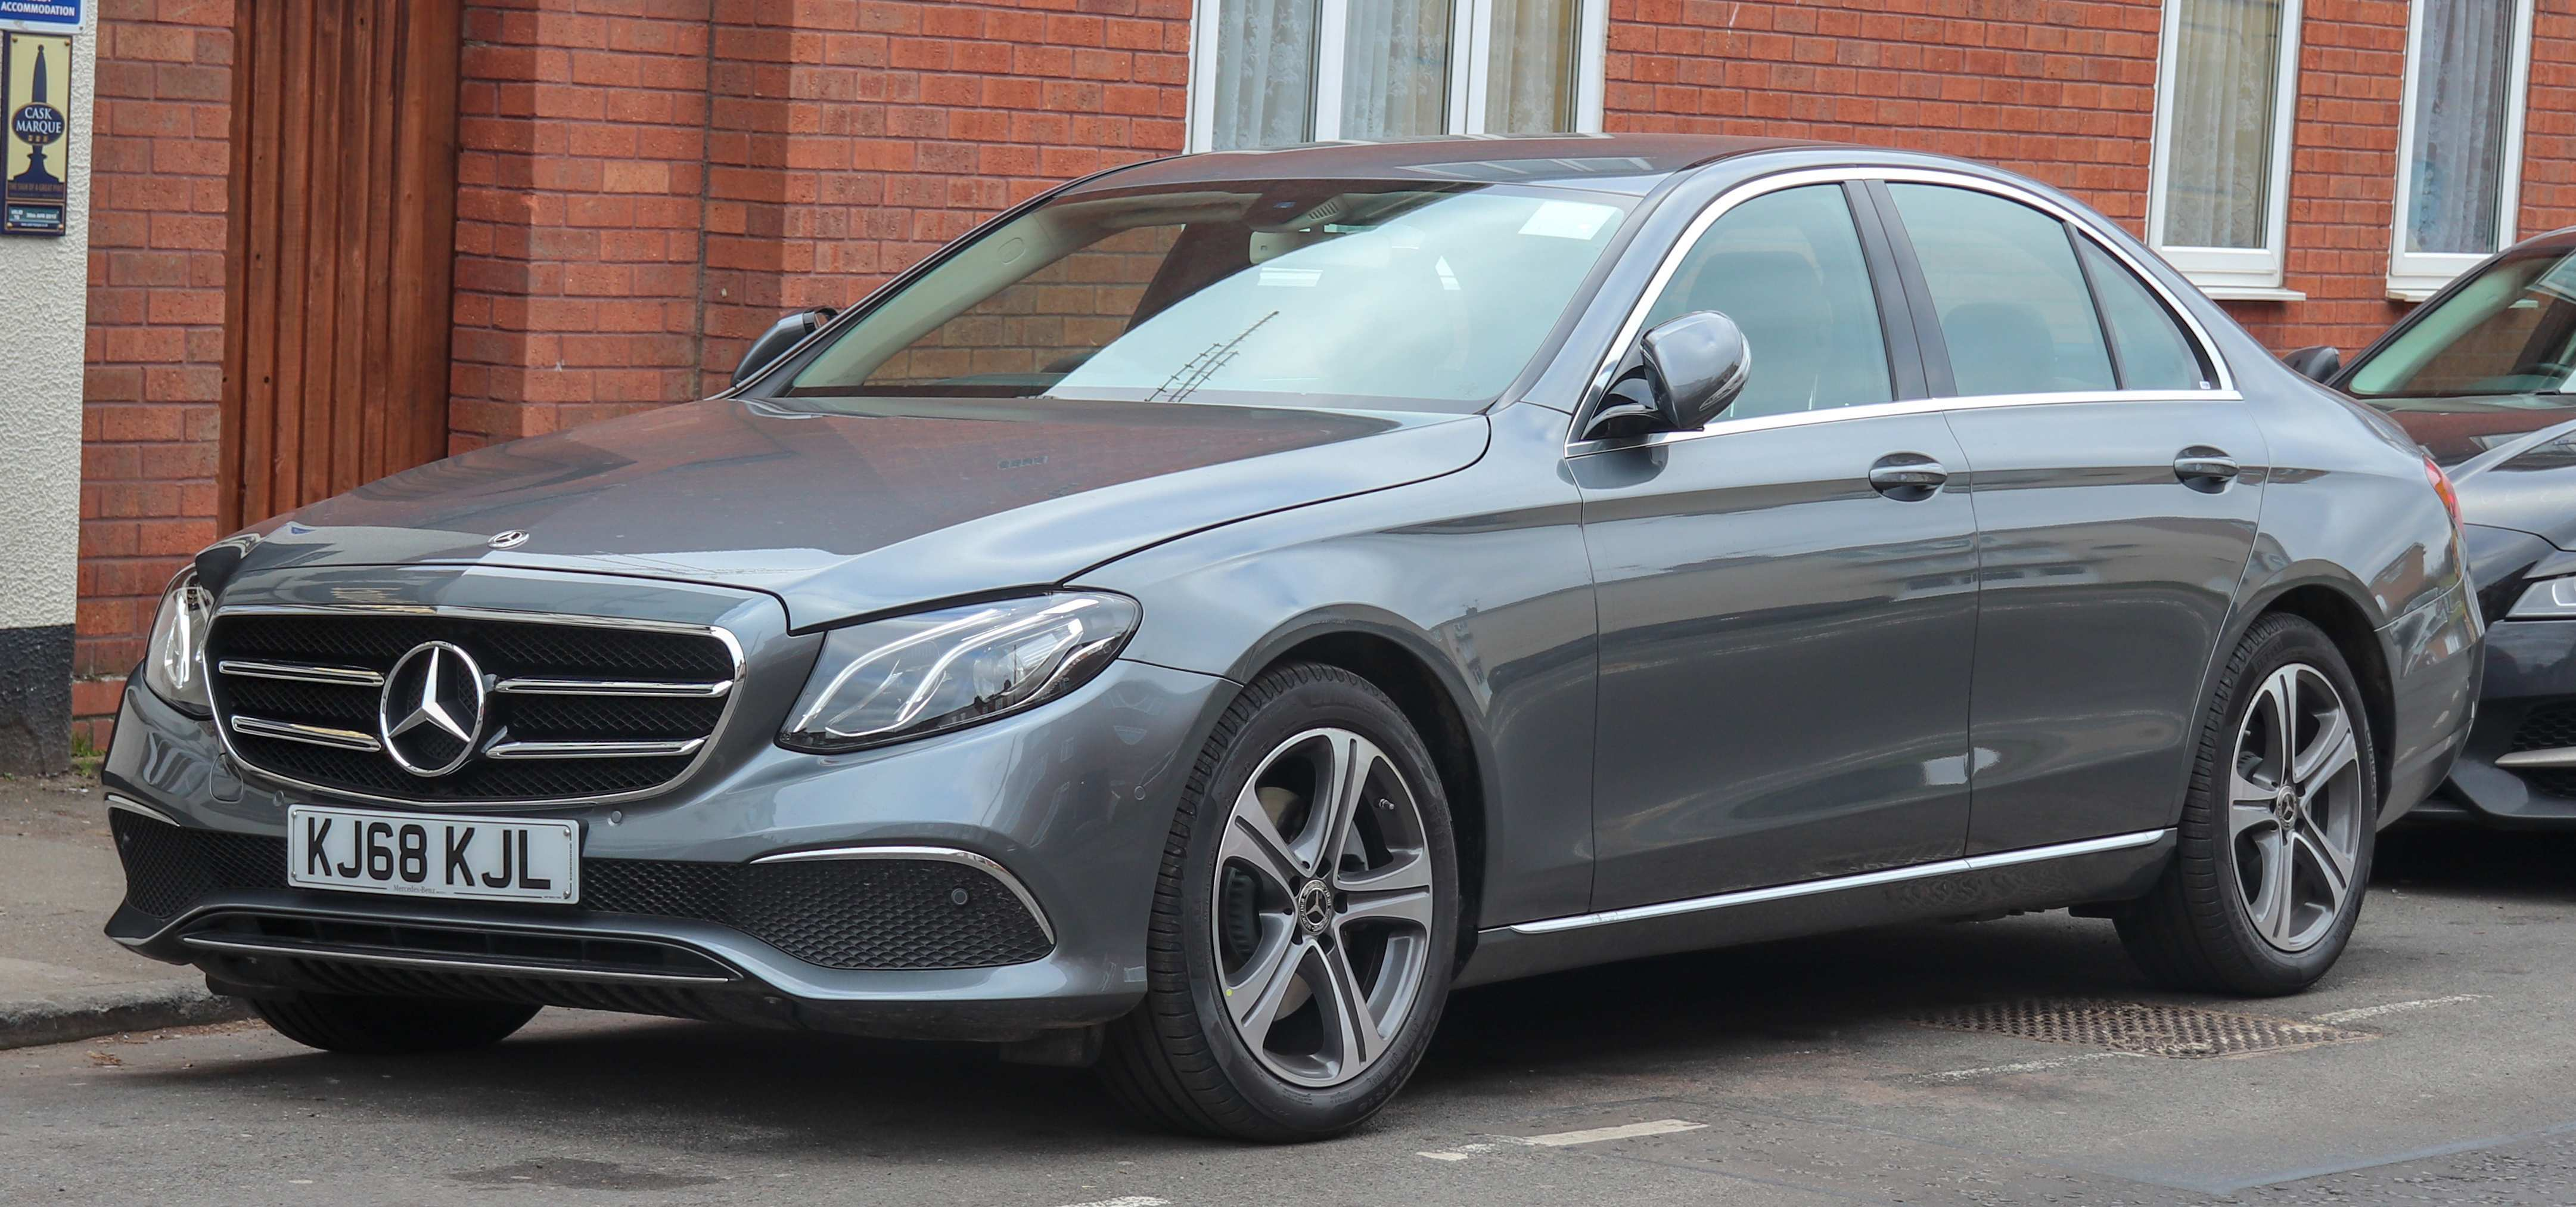 21 All New New Mercedes A Class 2019 Price Uae First Drive Style with New Mercedes A Class 2019 Price Uae First Drive